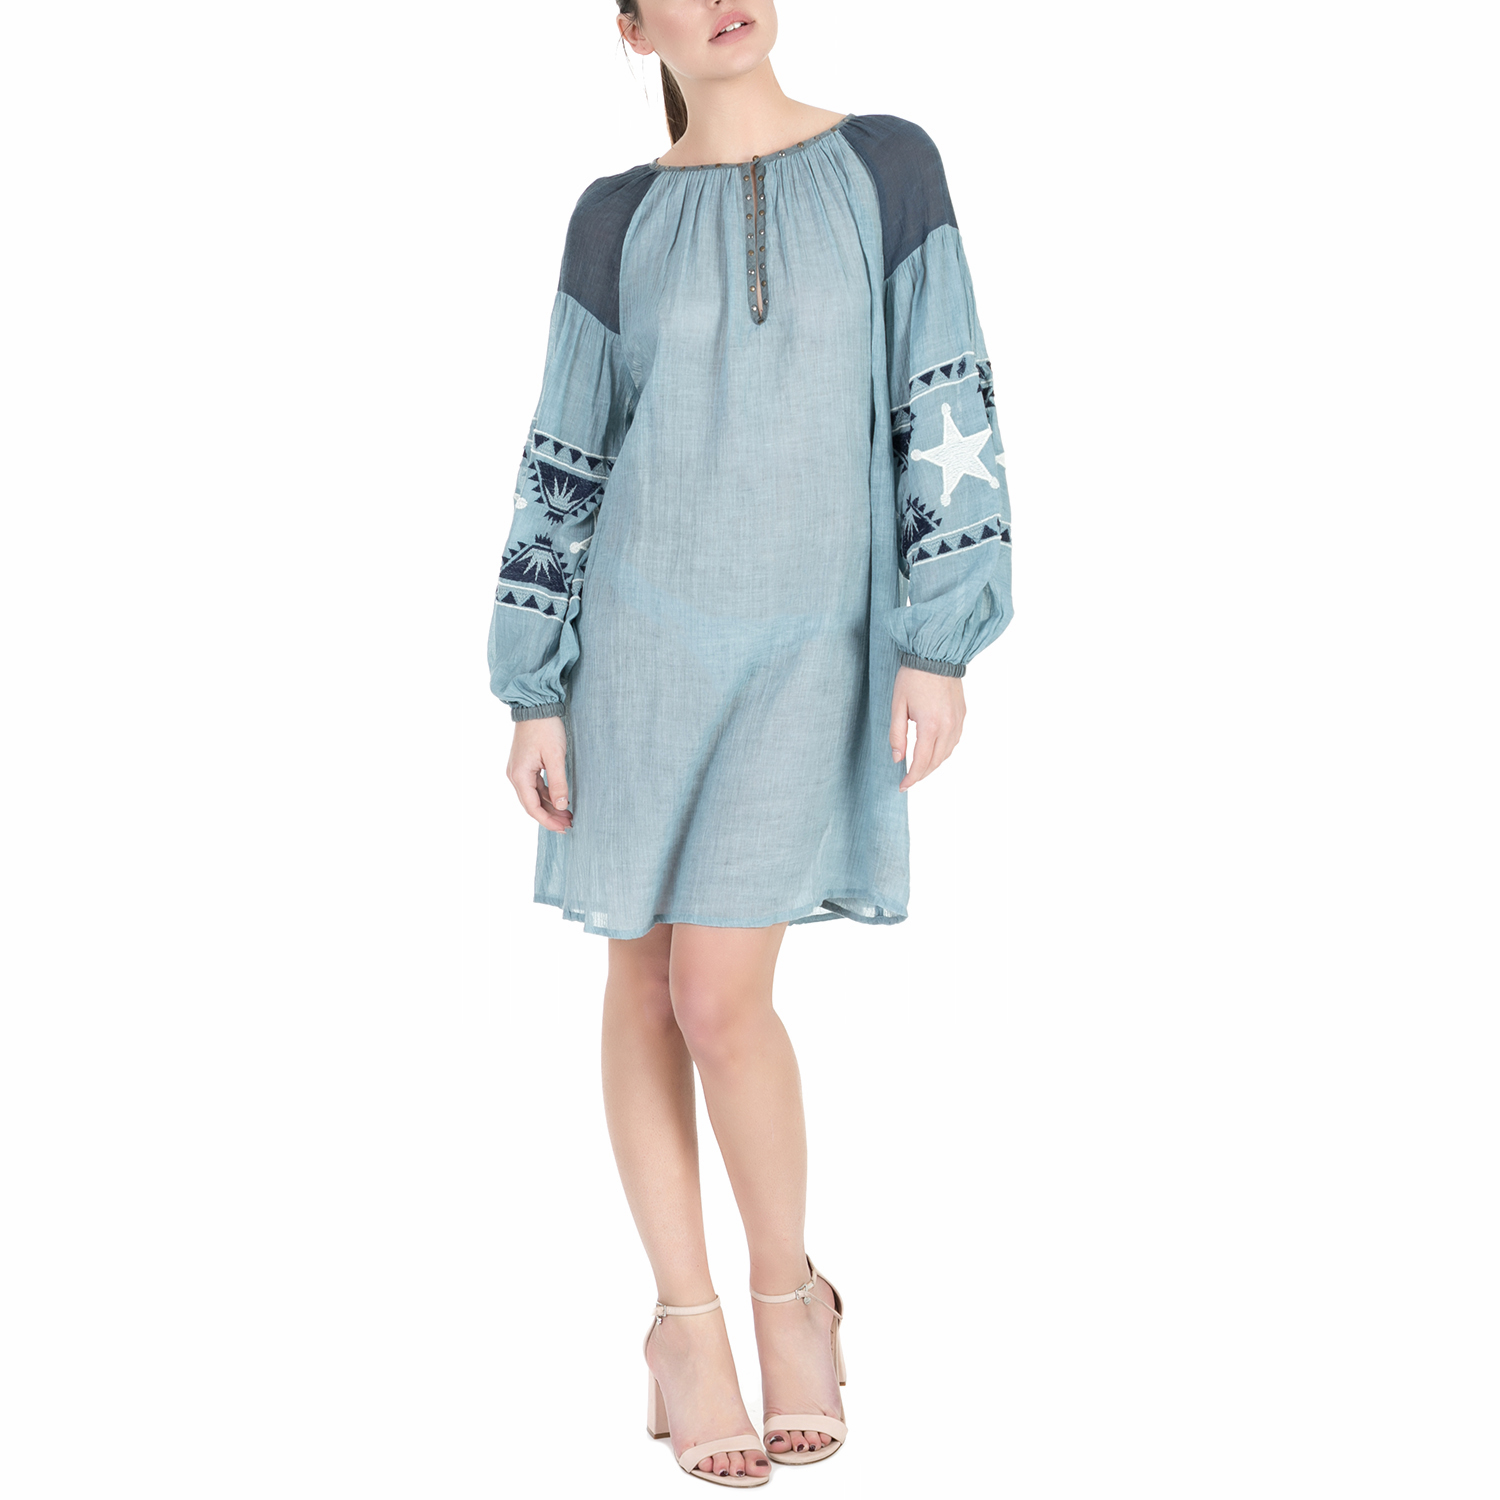 SCOTCH & SODA - Γυναικείο φόρεμα Scotch & Soda Sheer cotton tunic dress μπλε